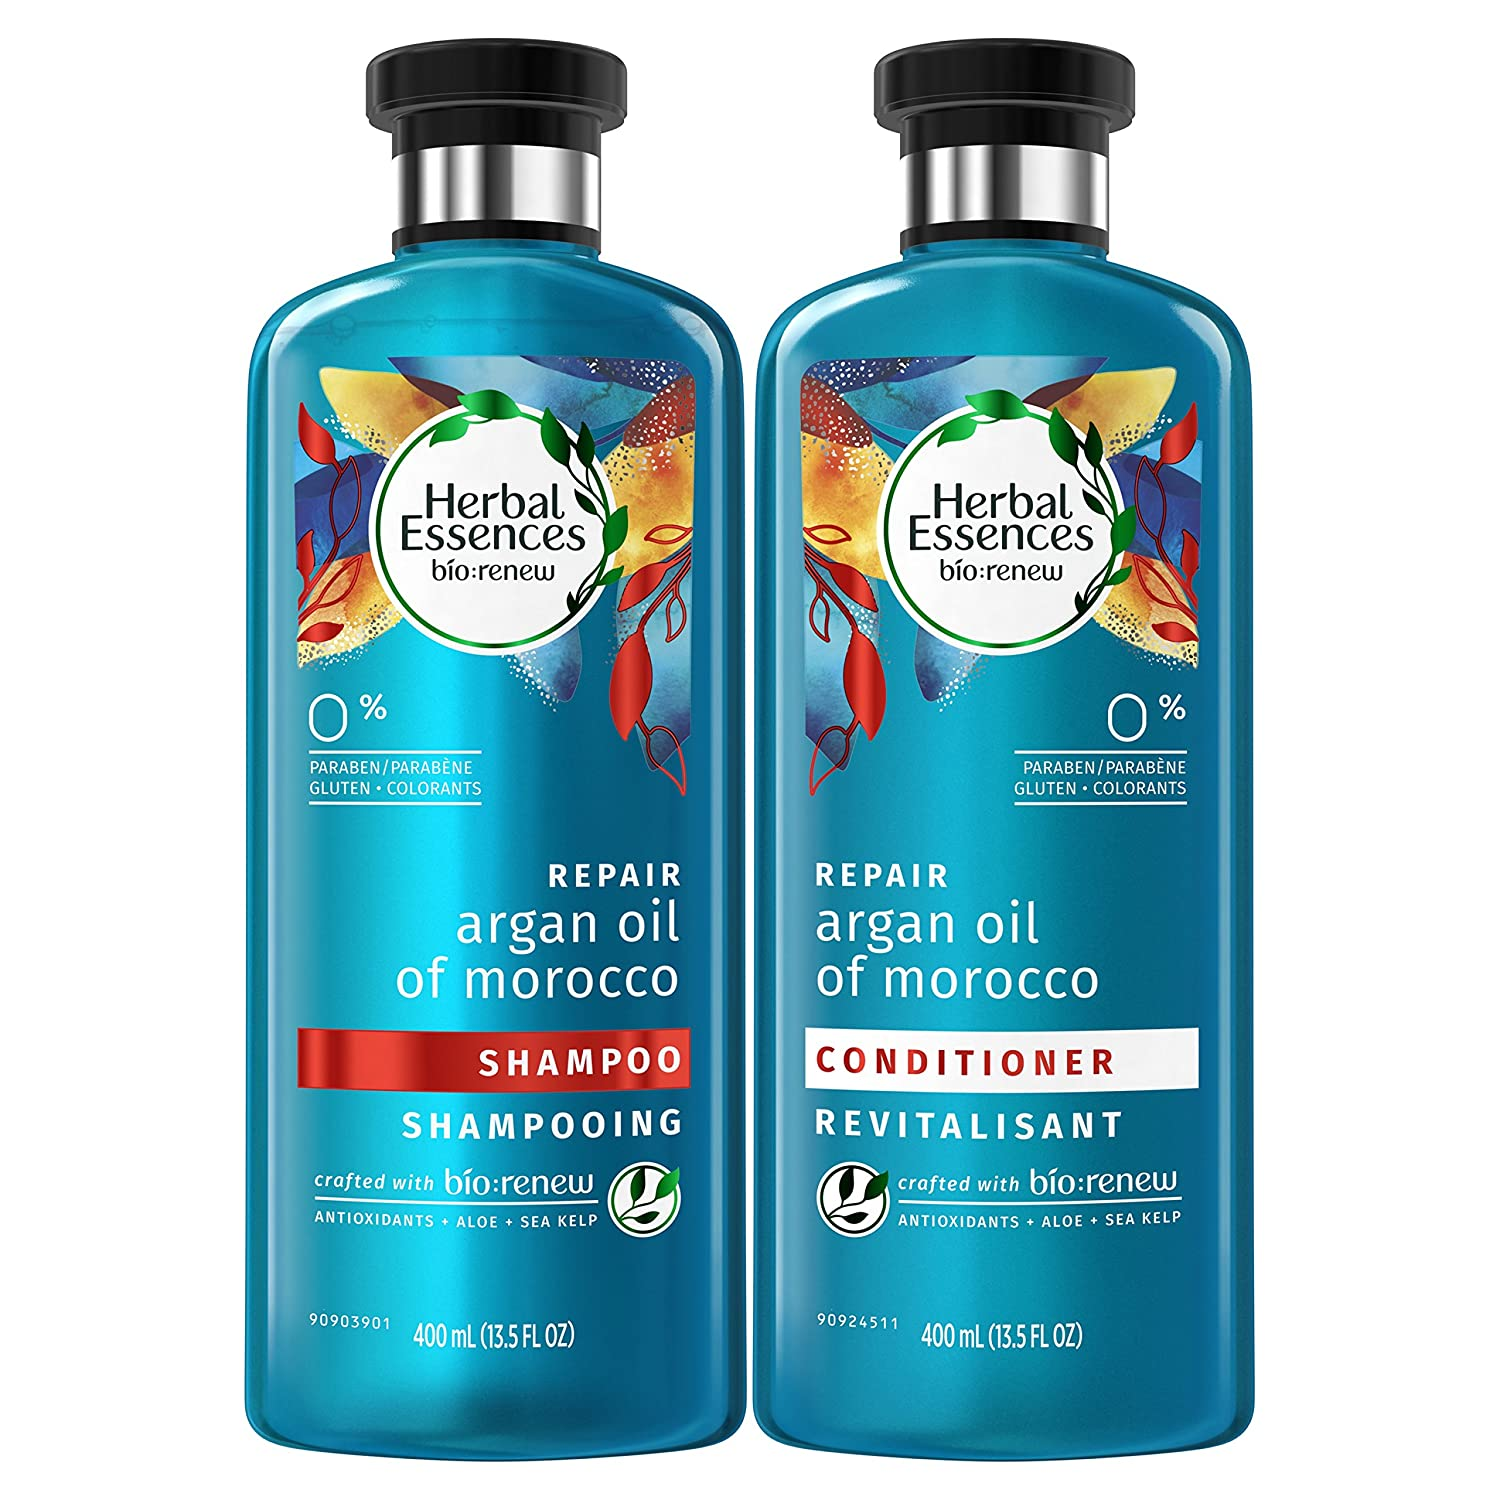 Herbal Essences Argan Oil Of Morocco Shampoo And Conditioner For Color Treated Hair, Paraben Free, Bio Renew, Bundle Pack, 13.5 Fl Oz by Herbal Essences